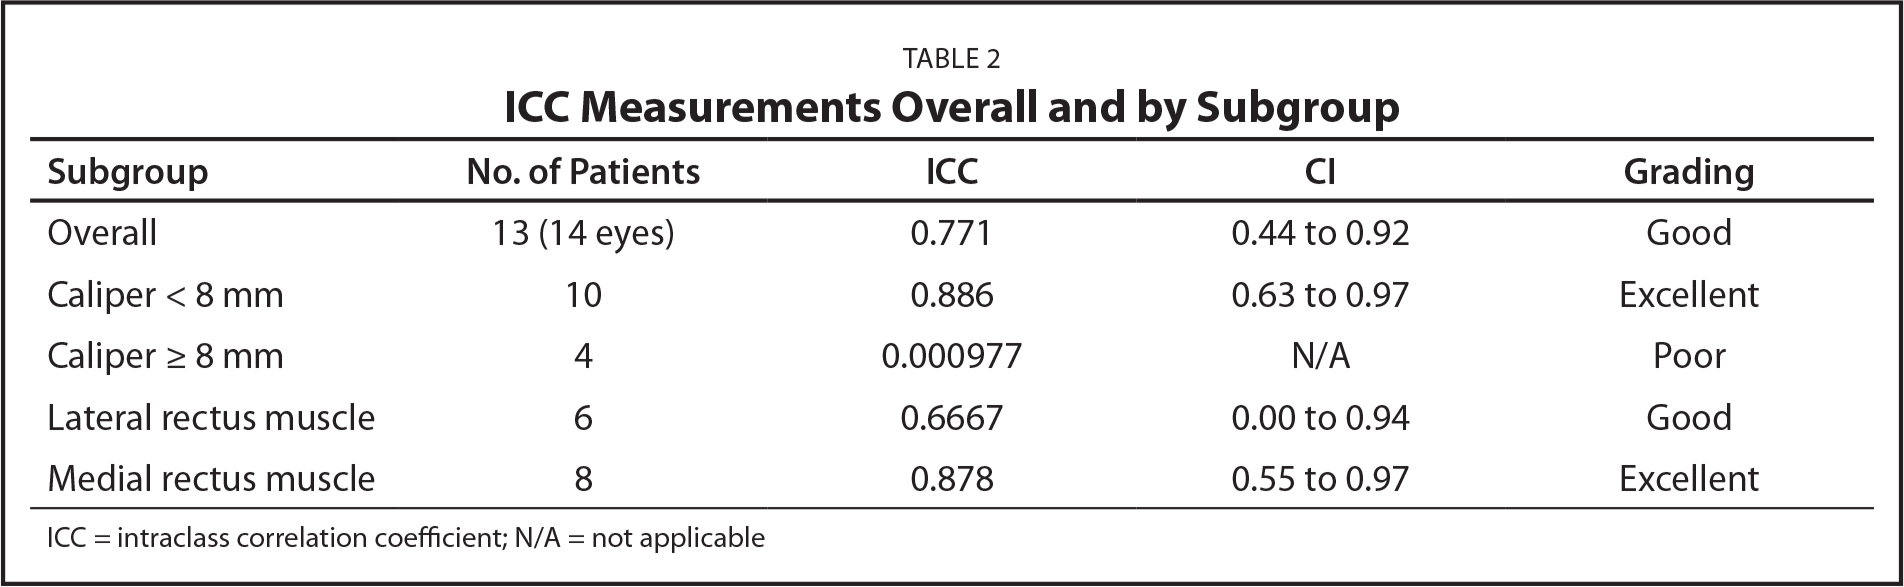 ICC Measurements Overall and by Subgroup